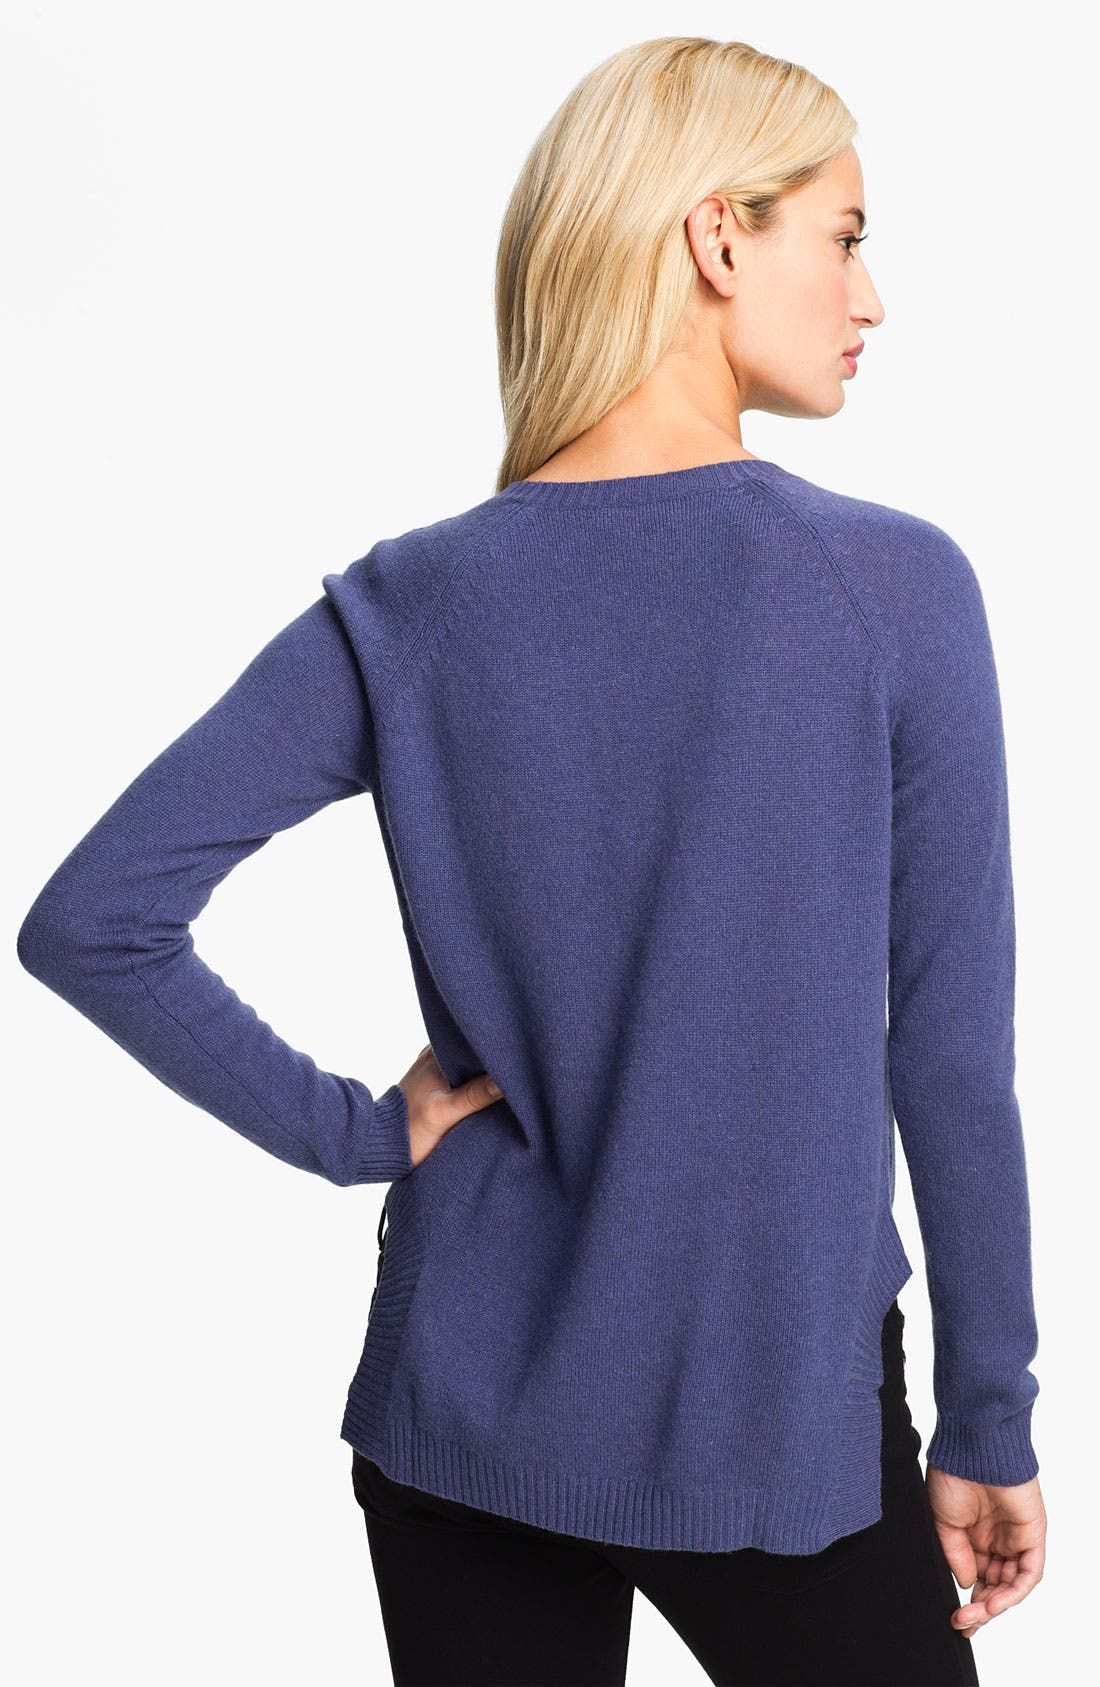 Alternate Image 2  - Christopher Fischer 'Gisbelle' Cashmere Sweater (Online Exclusive)